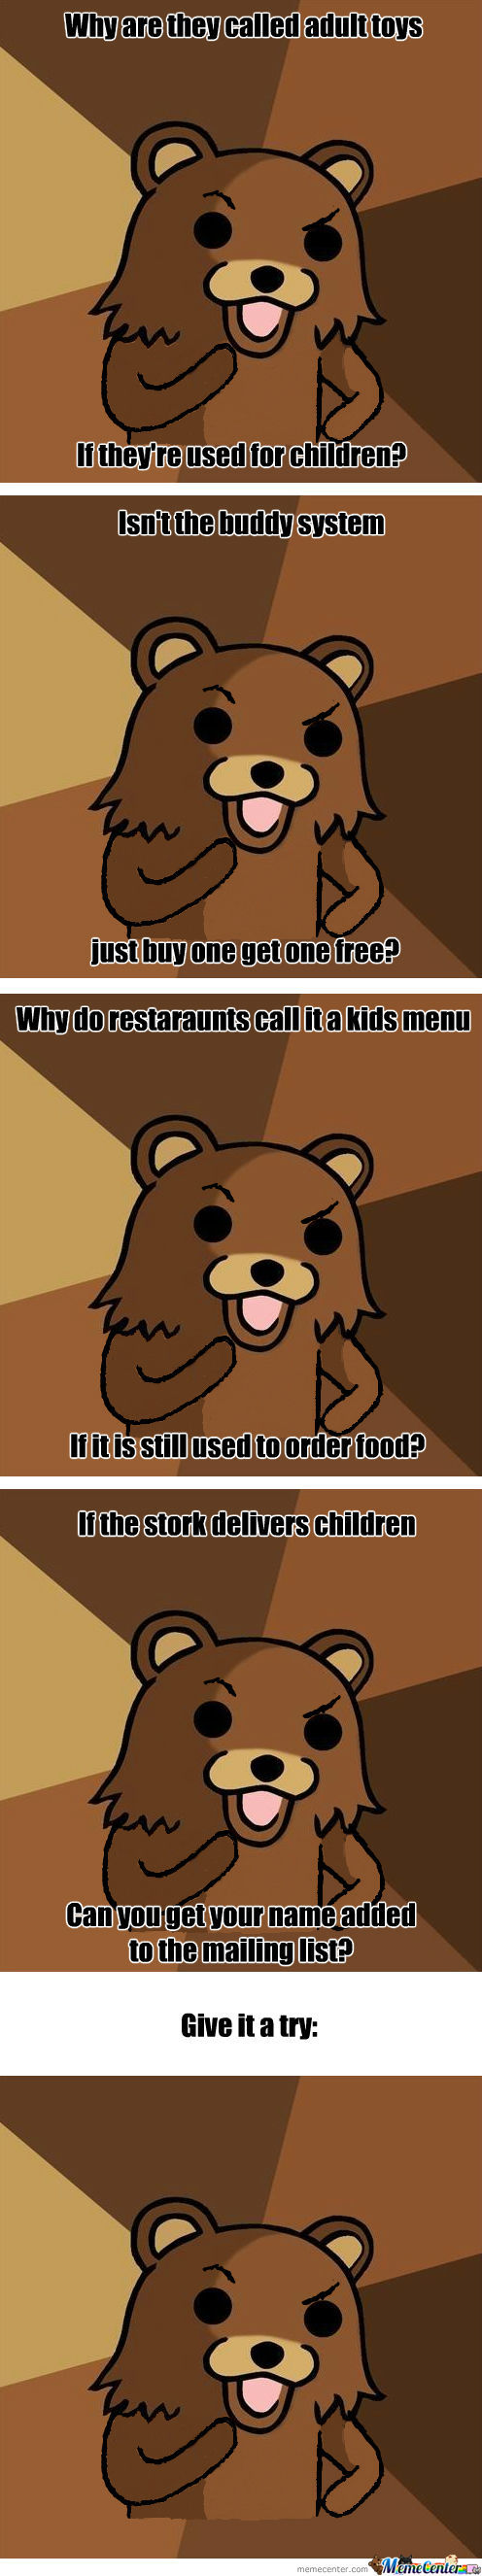 Philosobear - The Quizzical Side Of Pedobear.